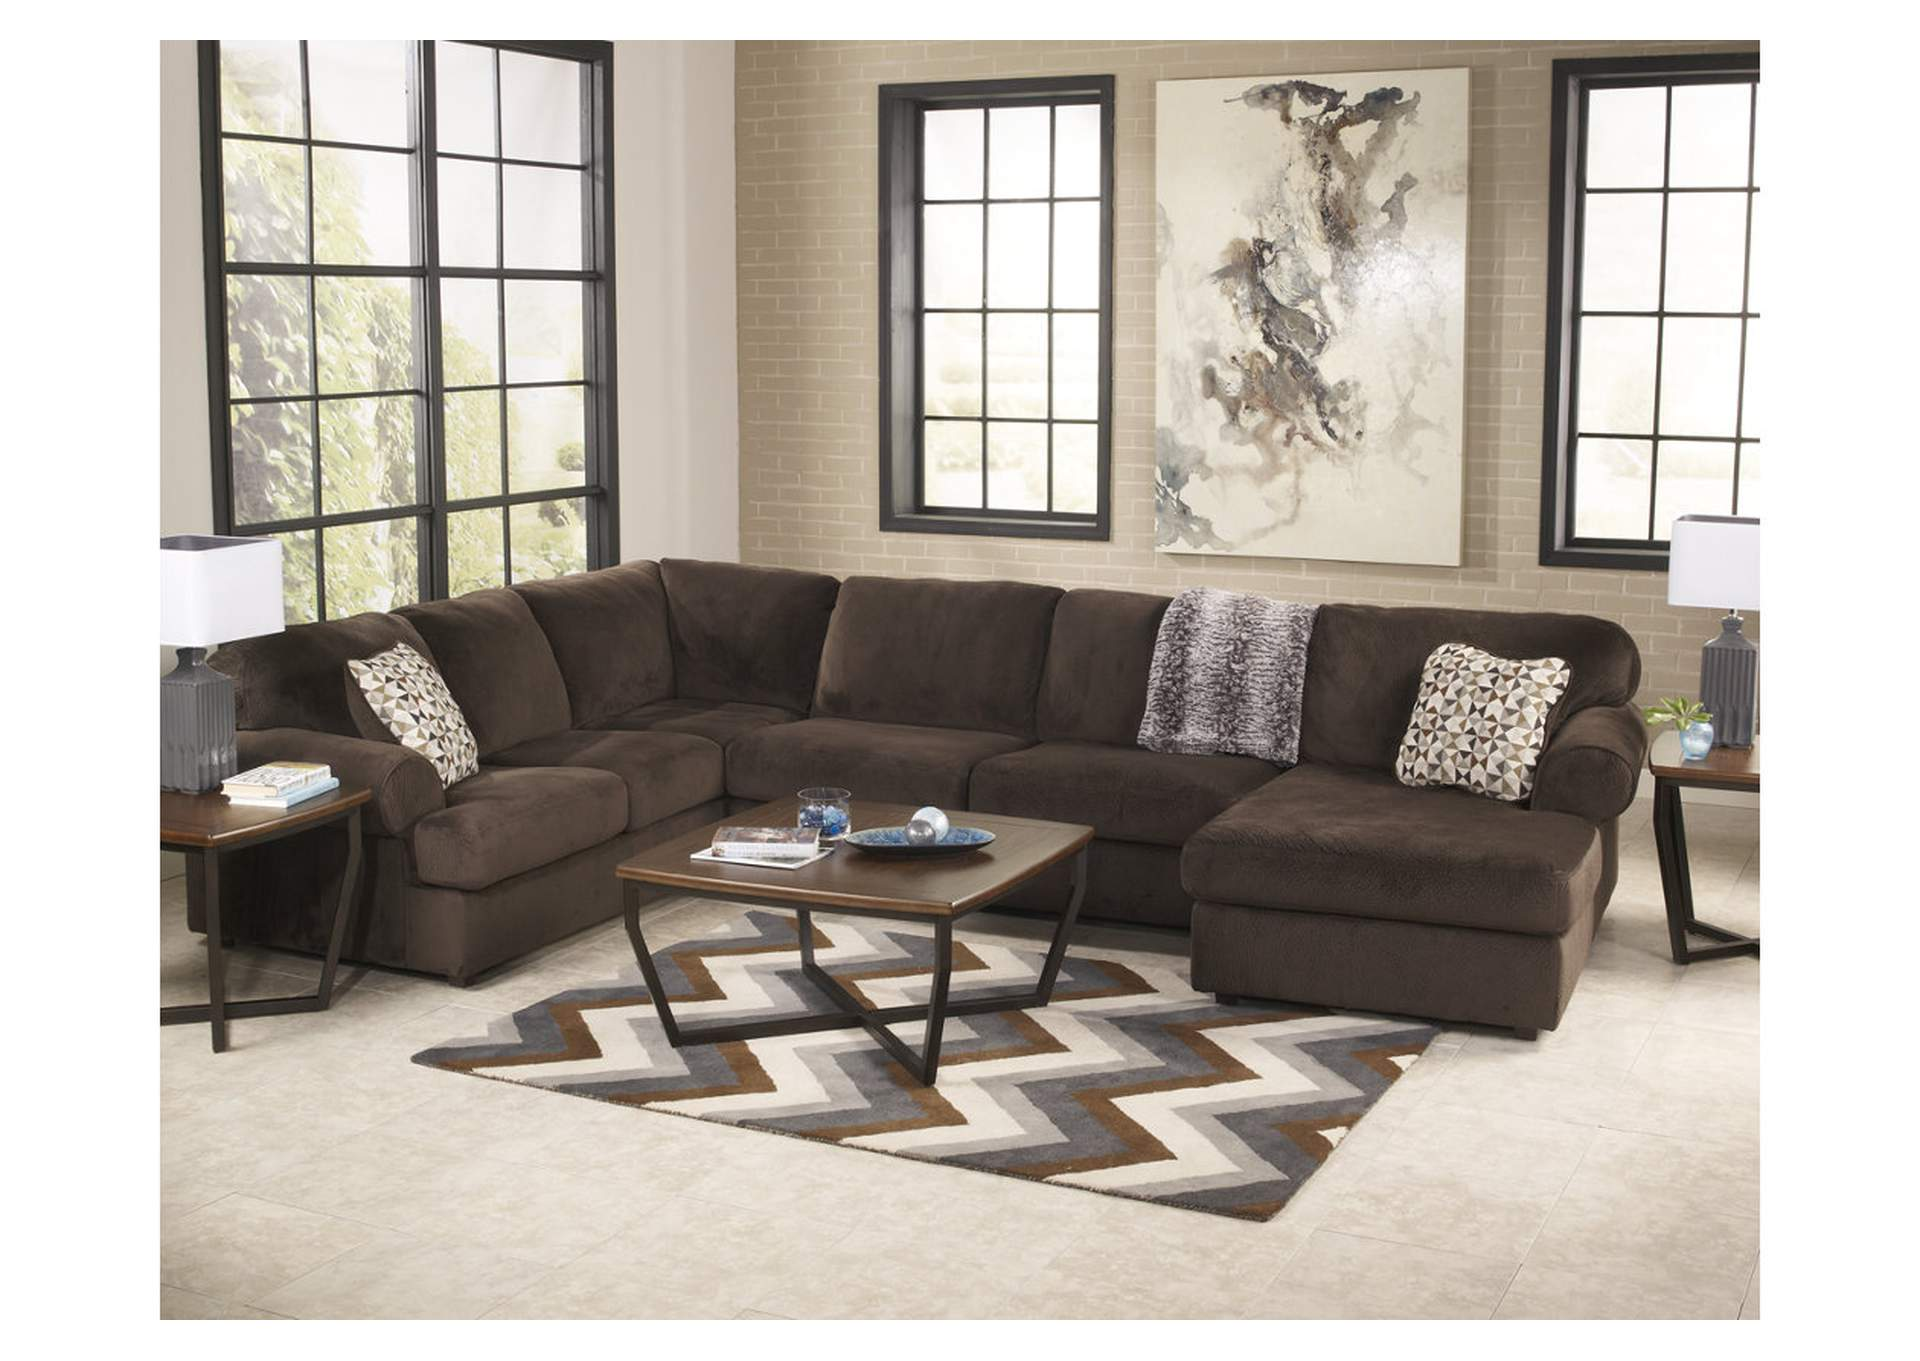 Jessa Place Chocolate Right Facing Chaise Sectional & Furniture World | Marysville Oak Harbor Lynnwood Vancouver ... islam-shia.org